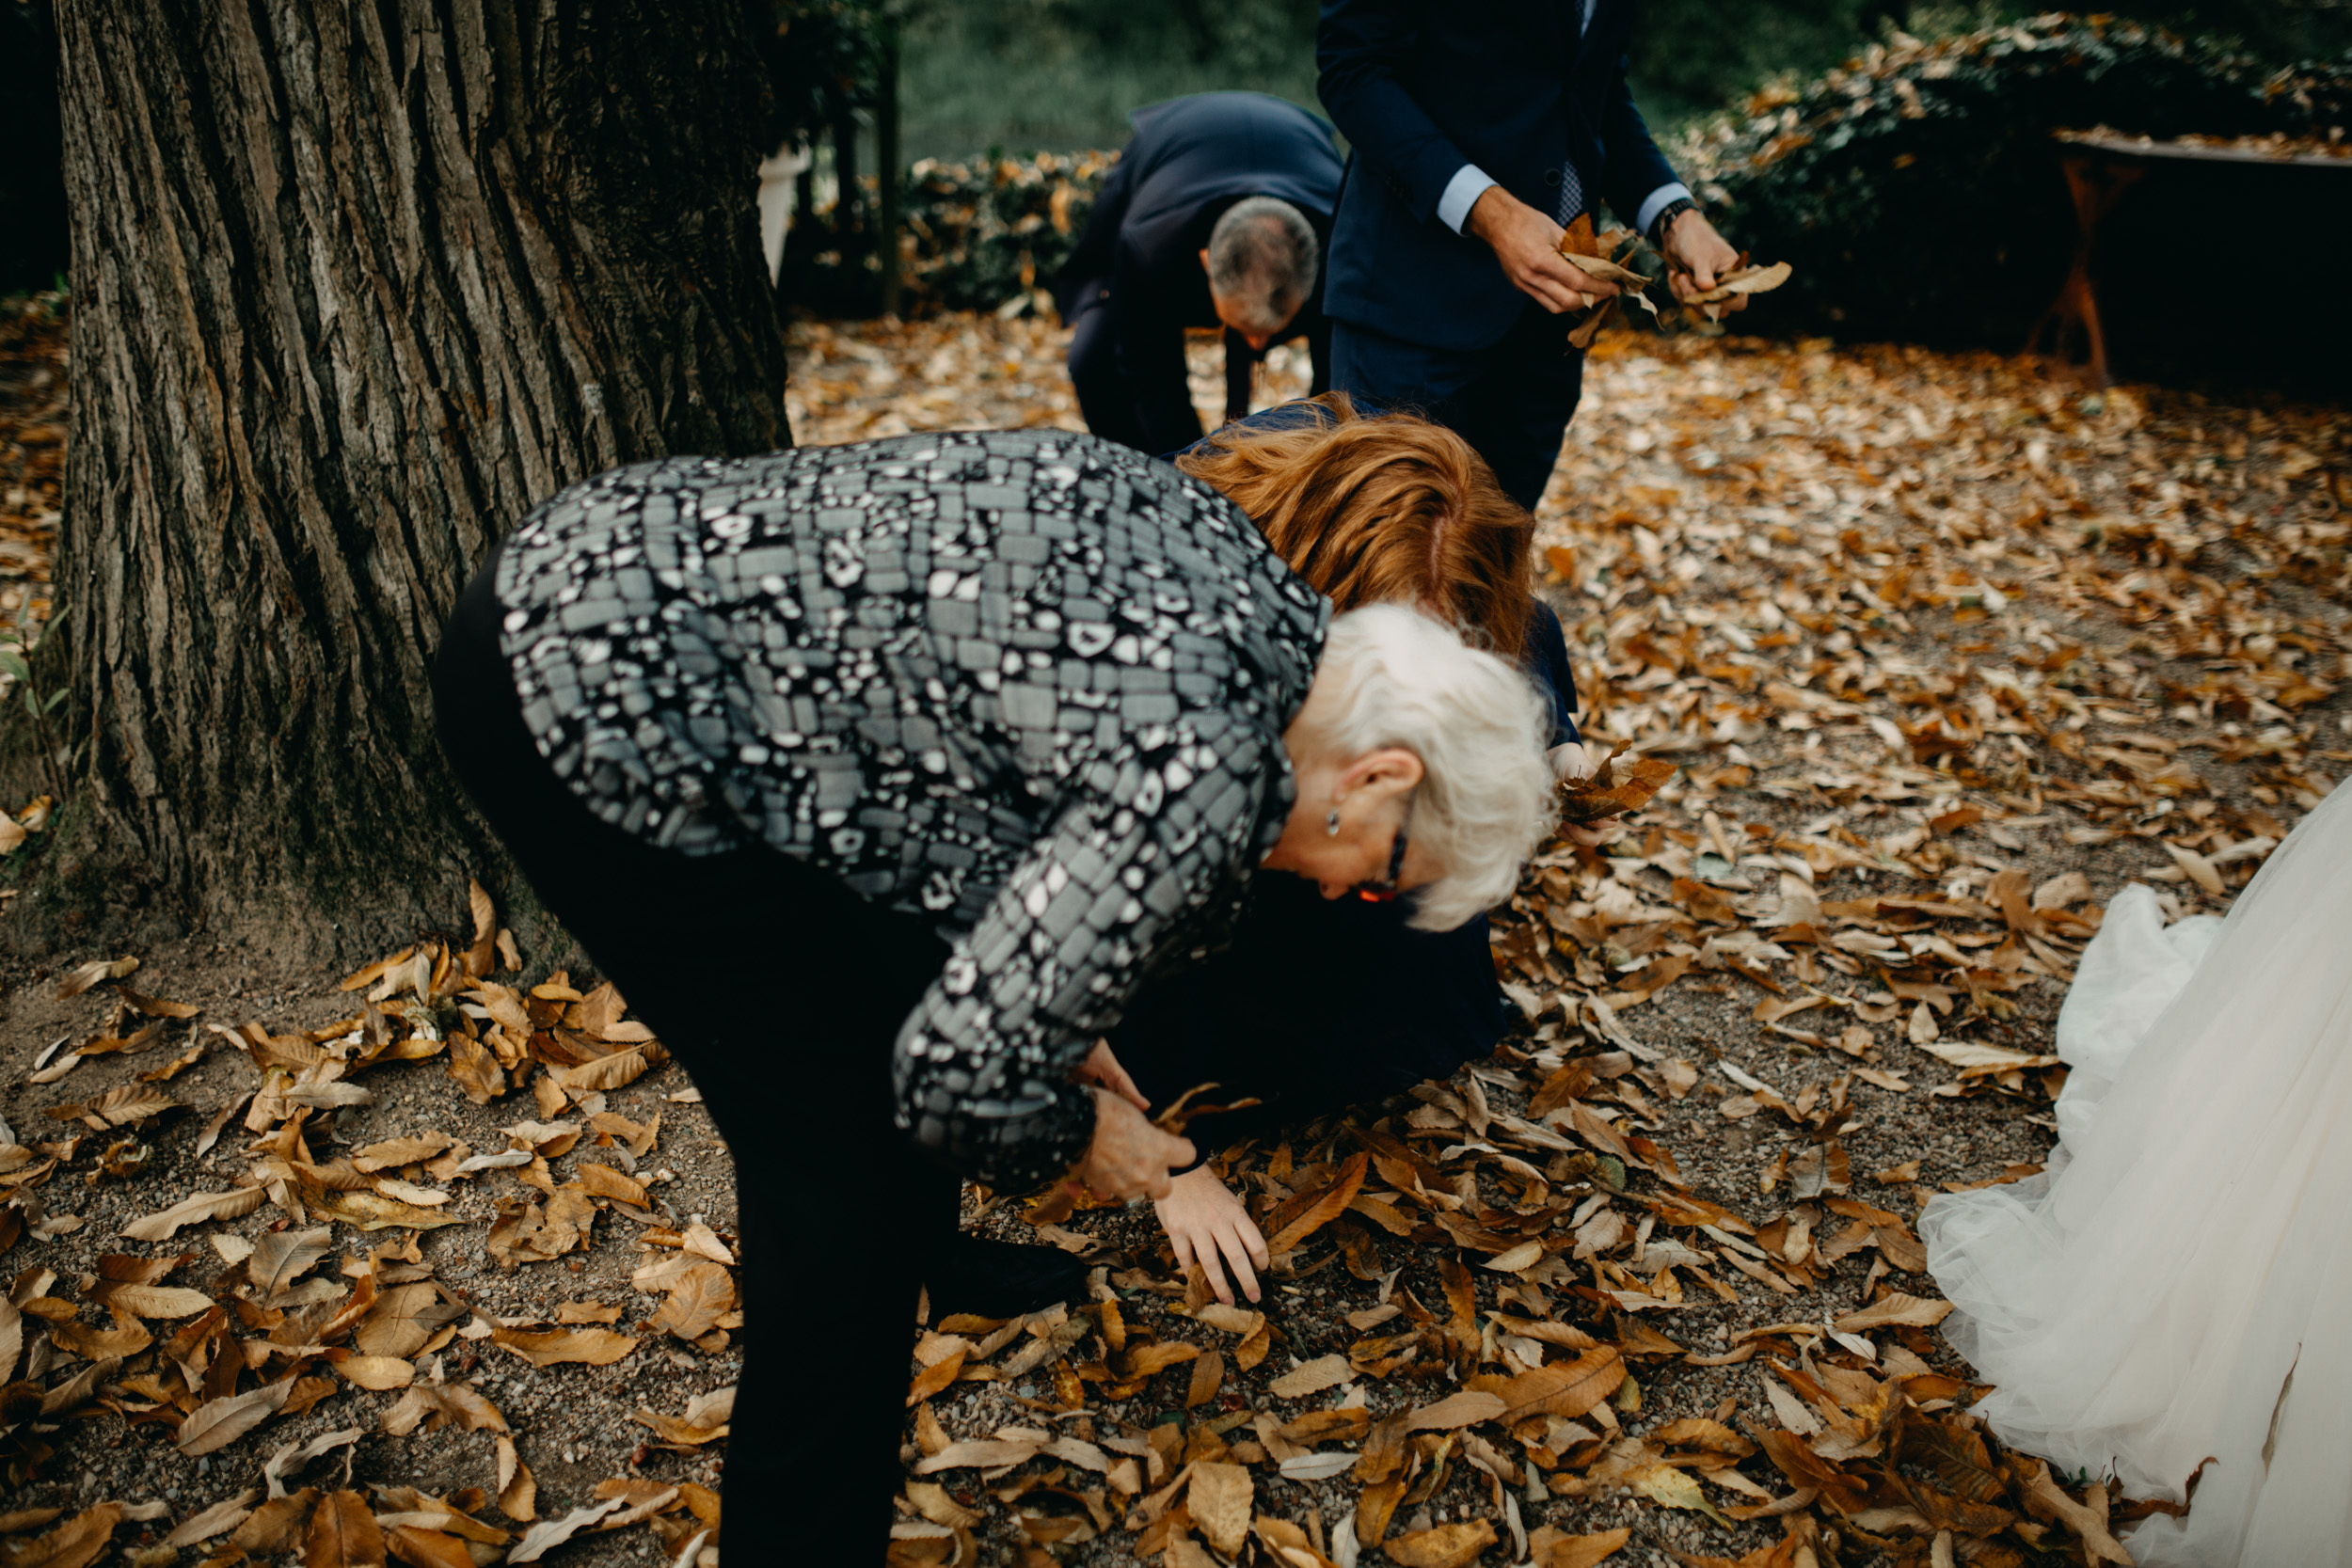 The whole family wanted to help during the shoot. Here are the grandmas gathering leaves